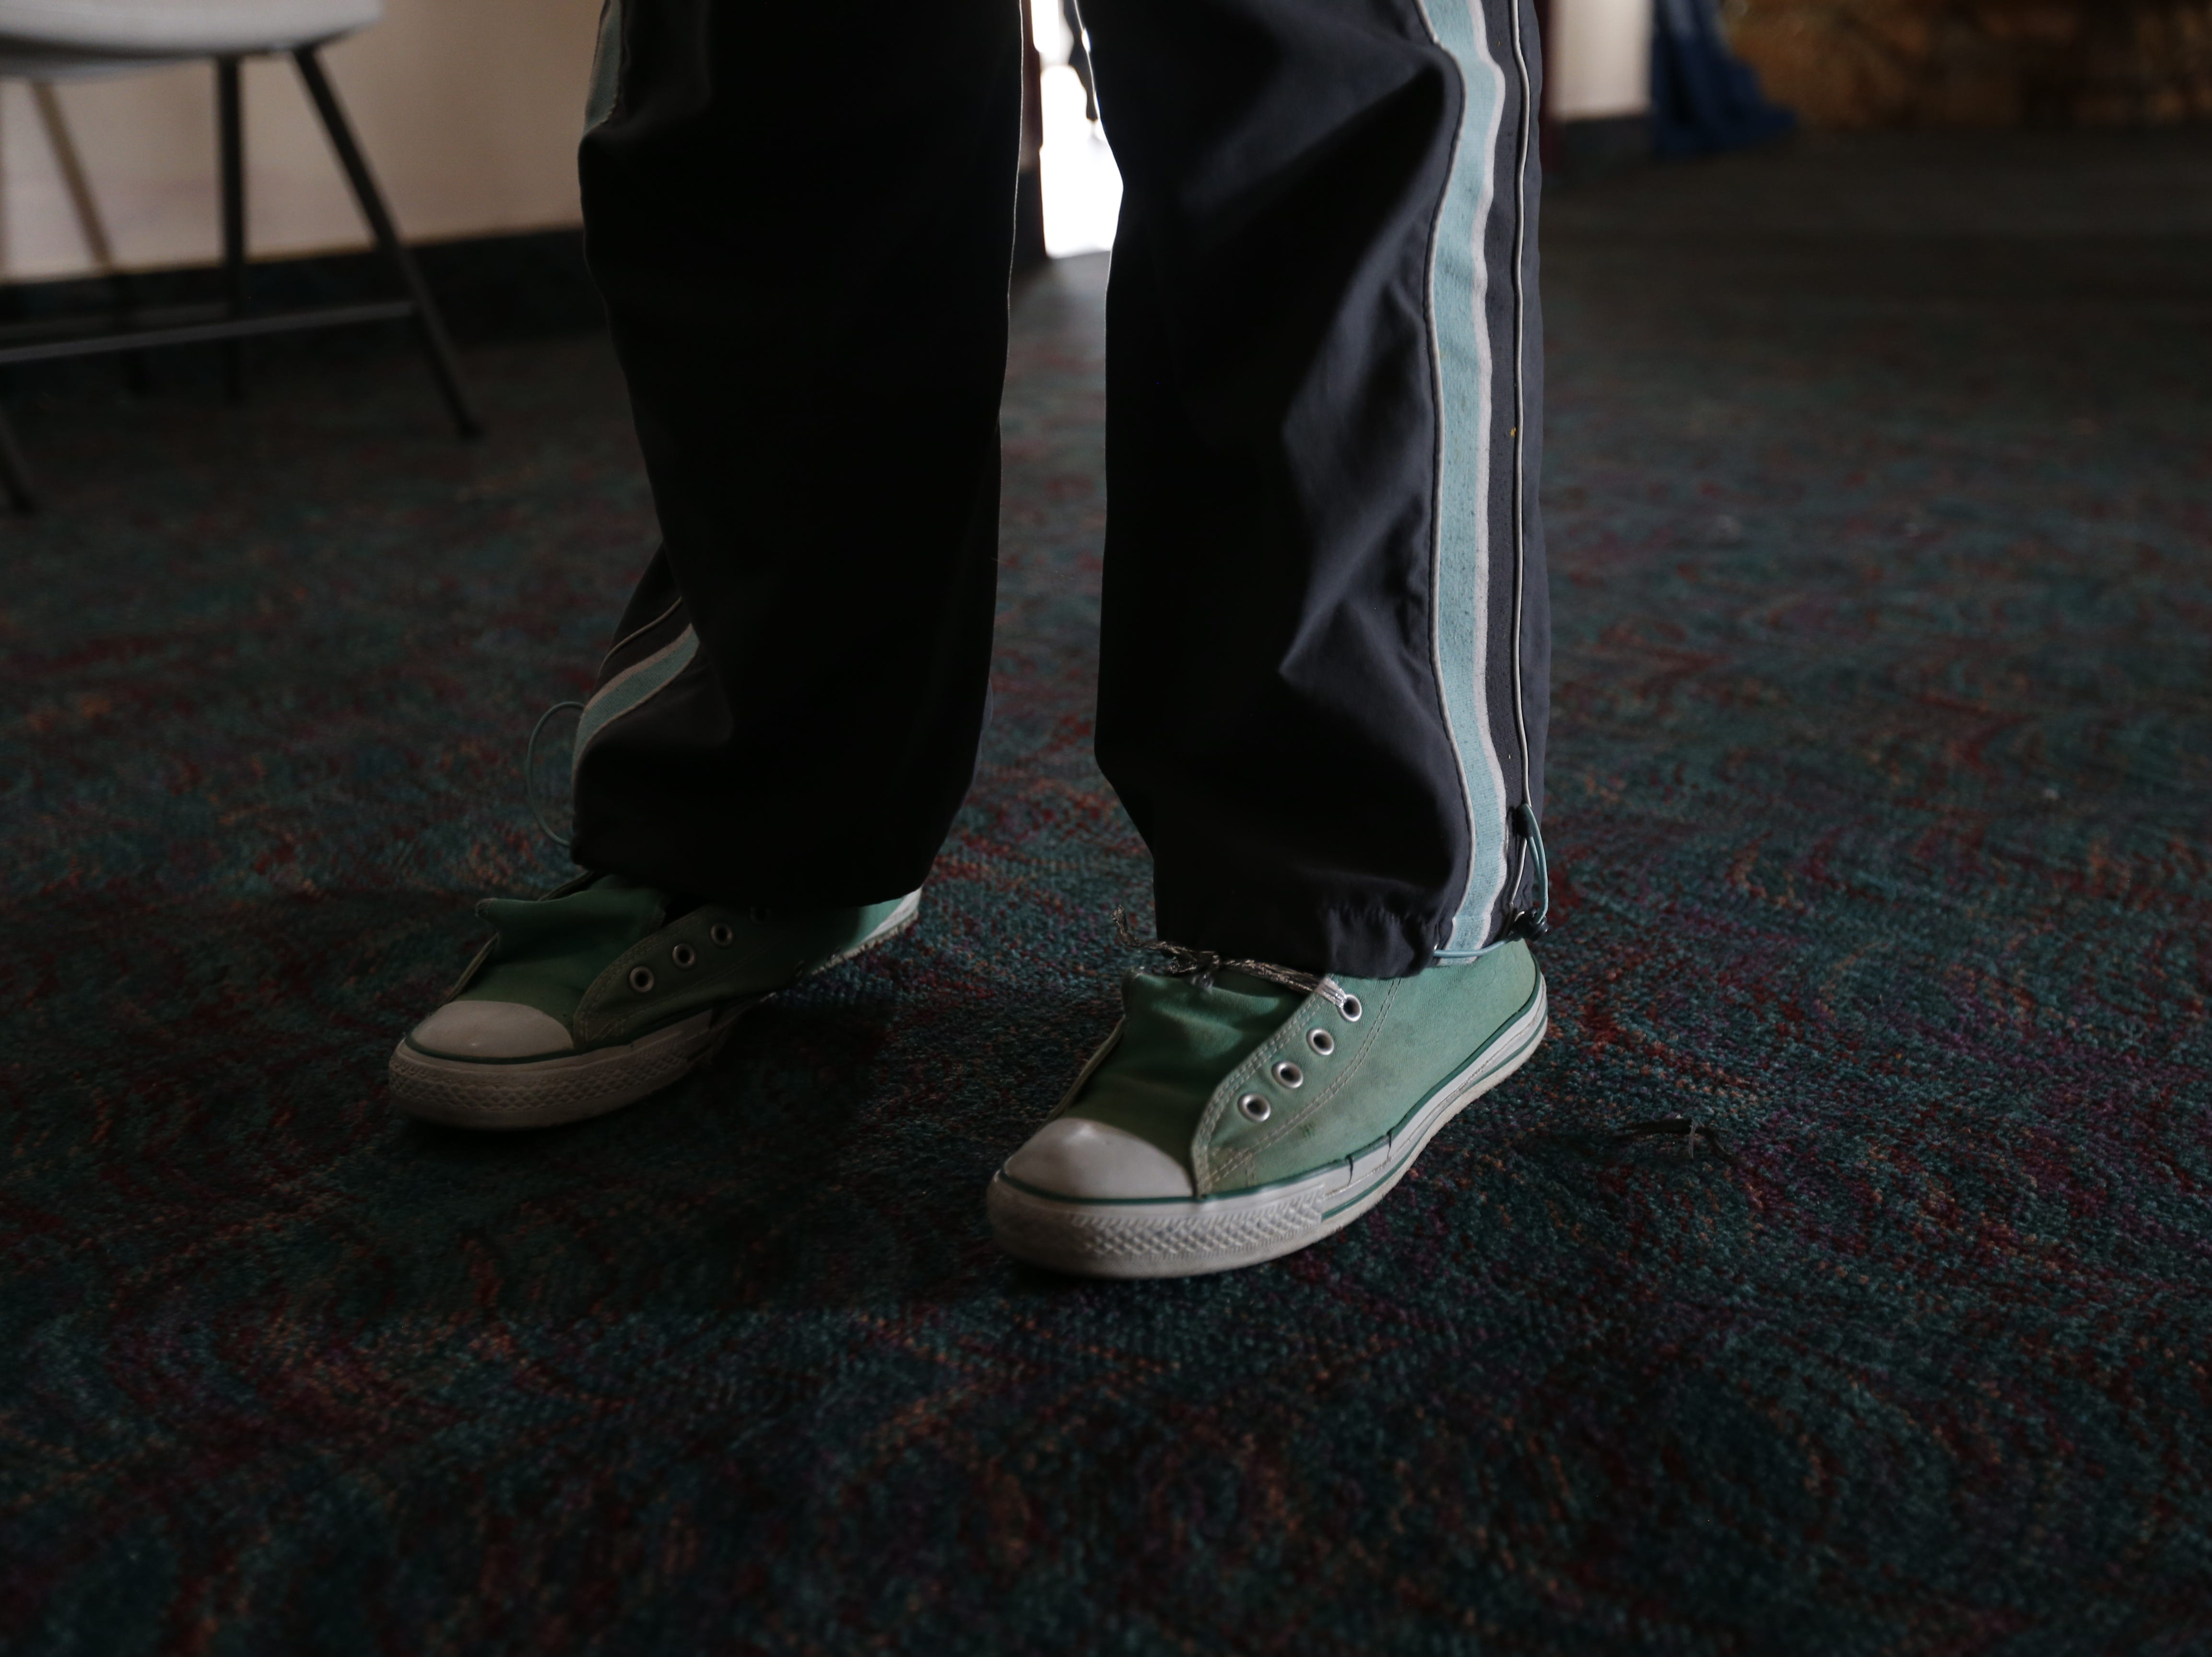 Migrants left at a west El Paso hotel on Wednesday used small pieces of mylar thermal blankets to tie their shoes and put their hair into a ponytail.